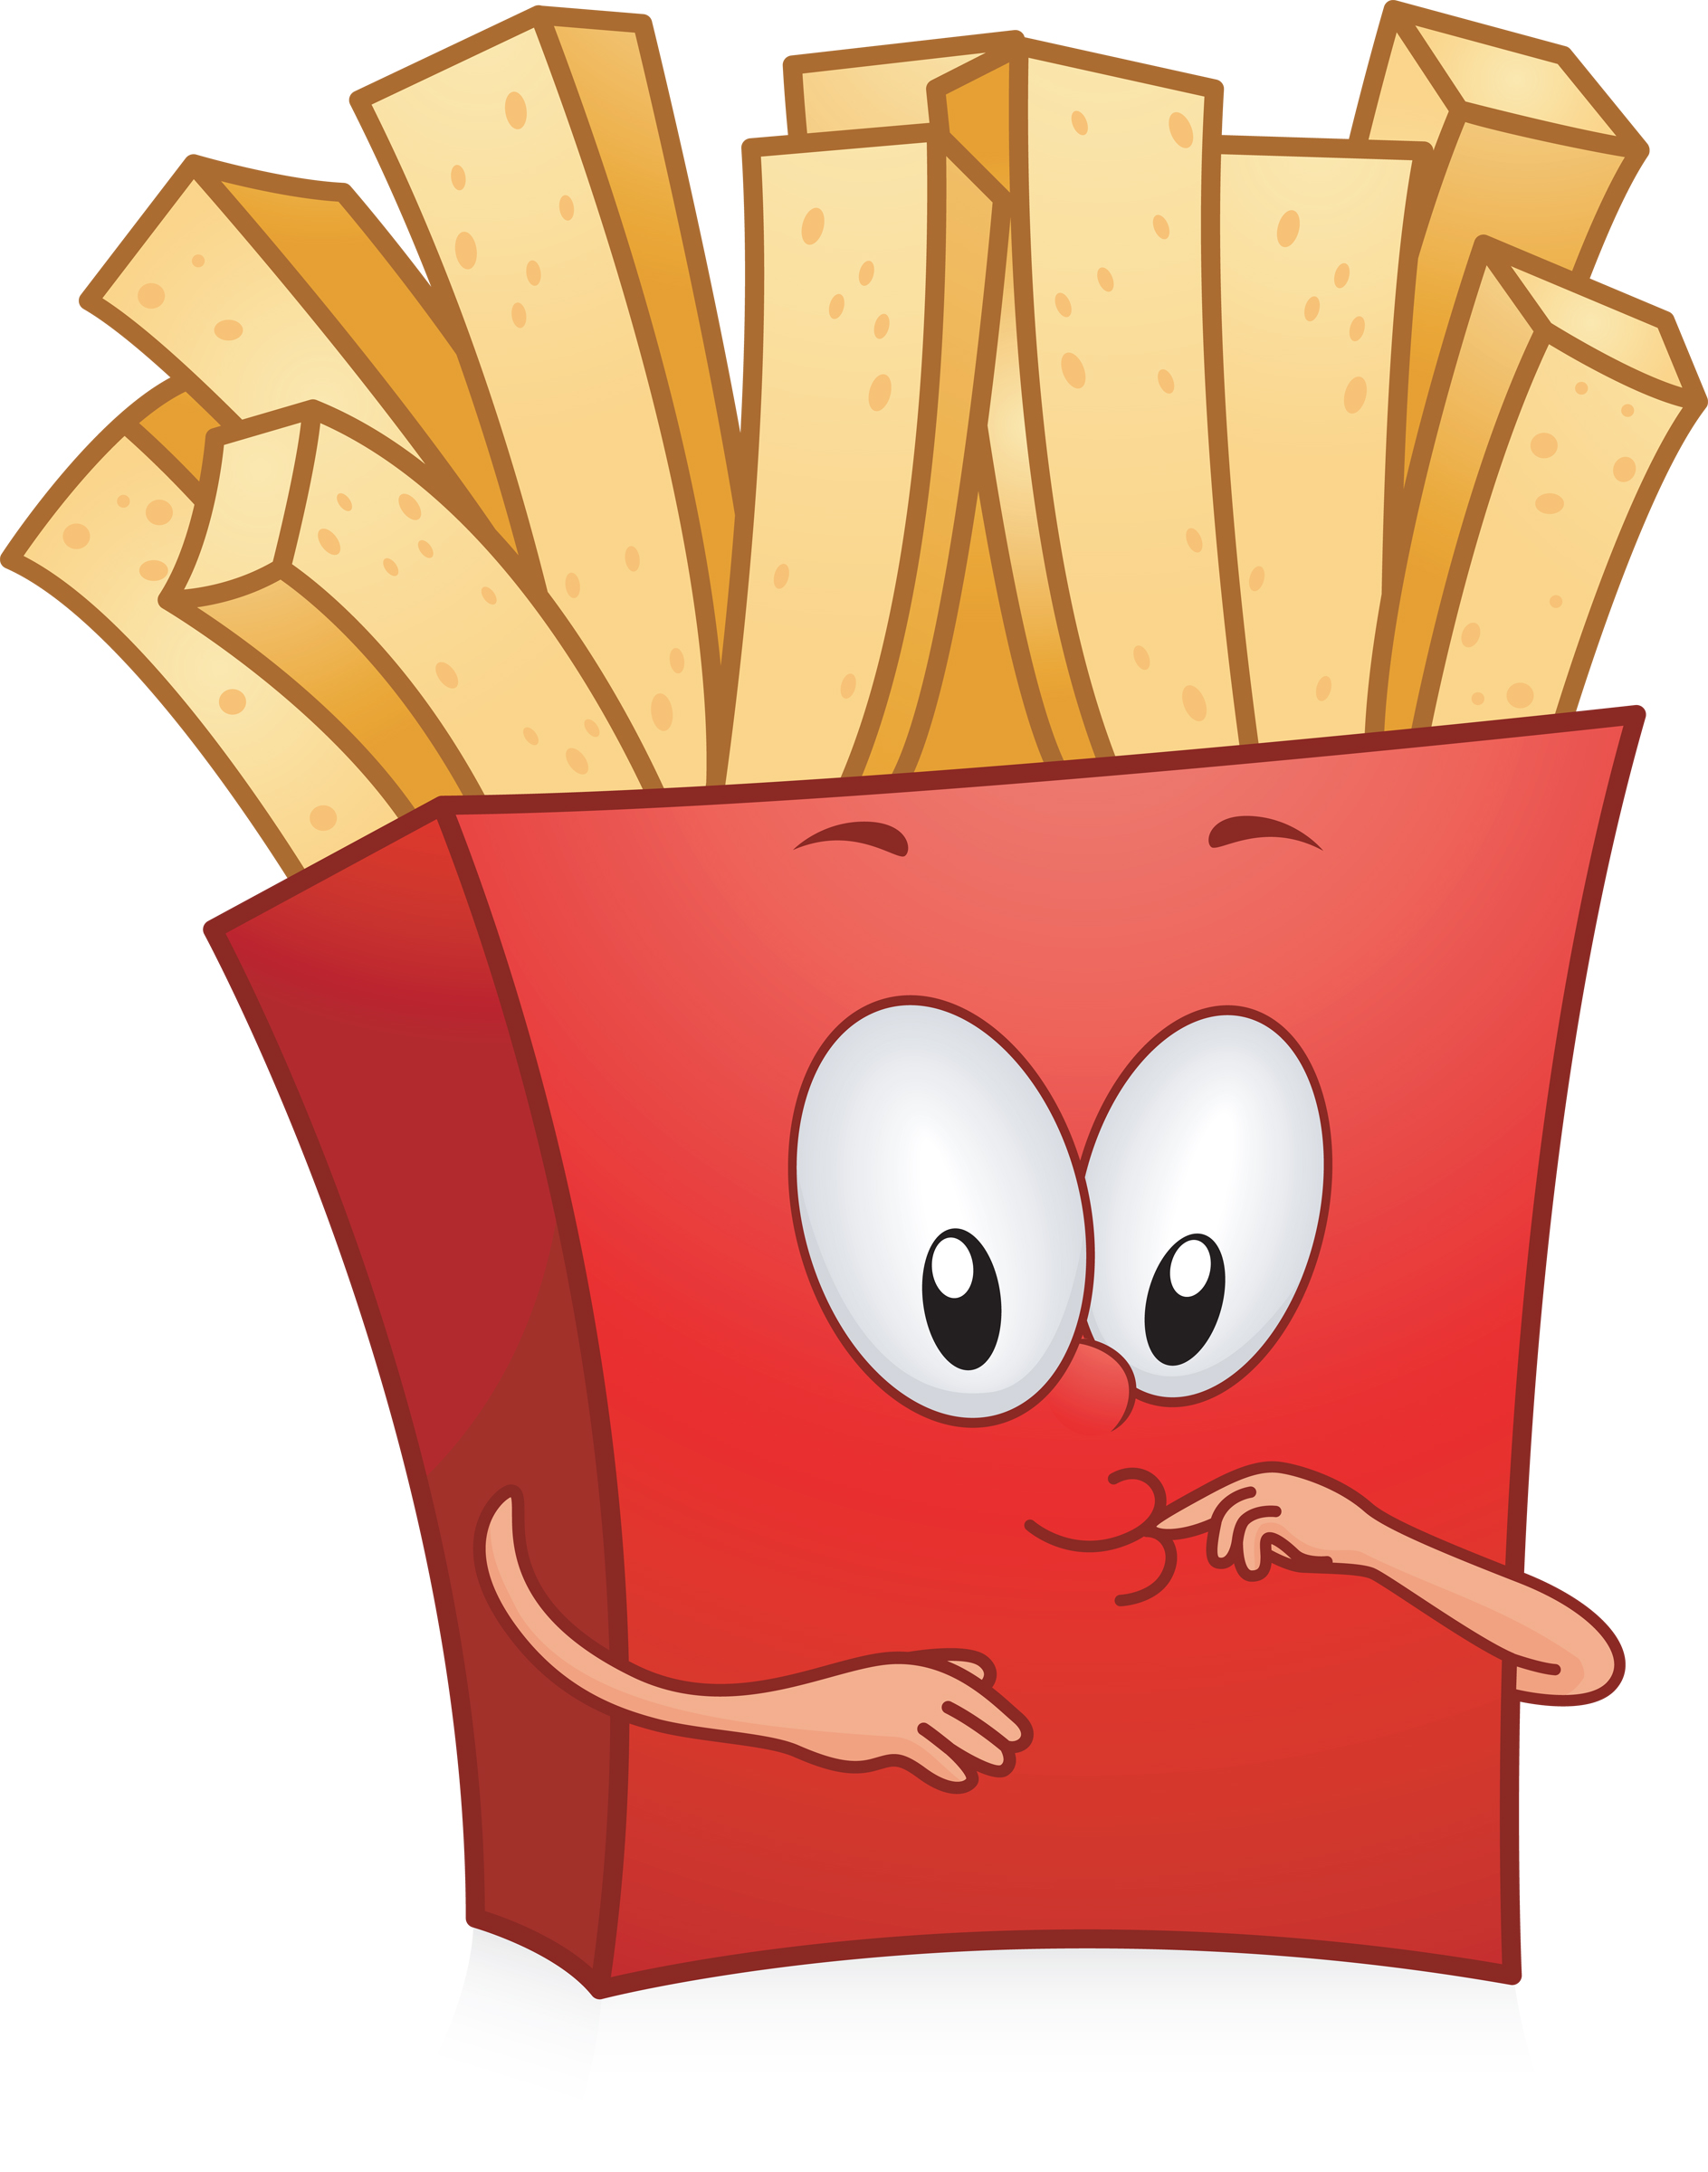 Animated french fries - photo#28